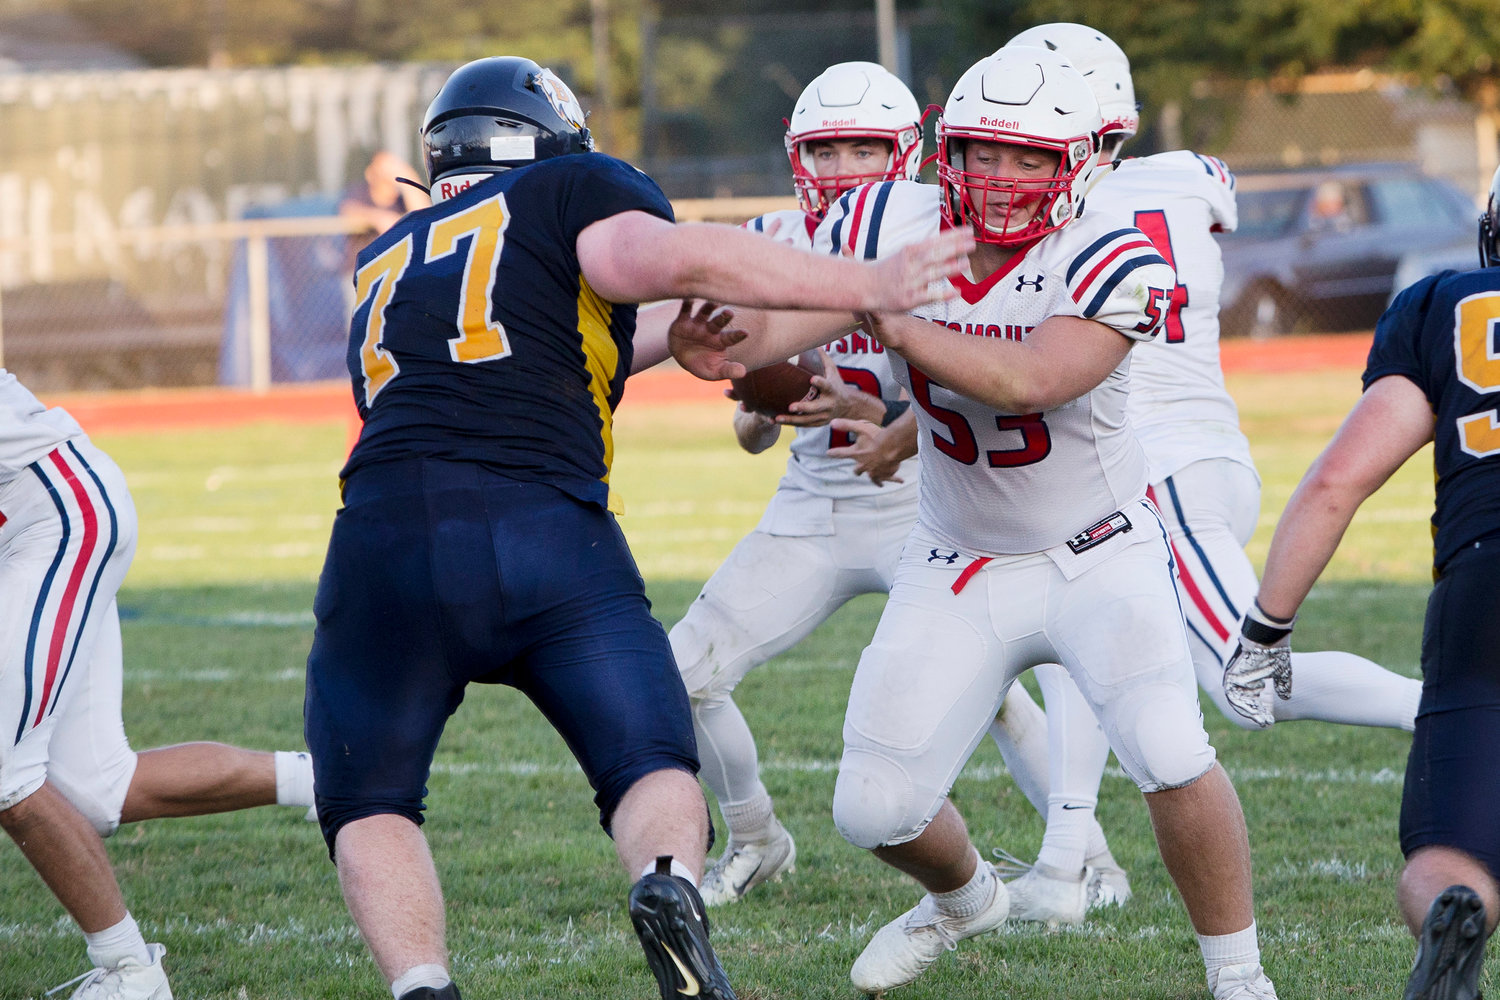 Harrison Russell (right) blocks a Barrington defender from reaching quarterback Benny Hurd.